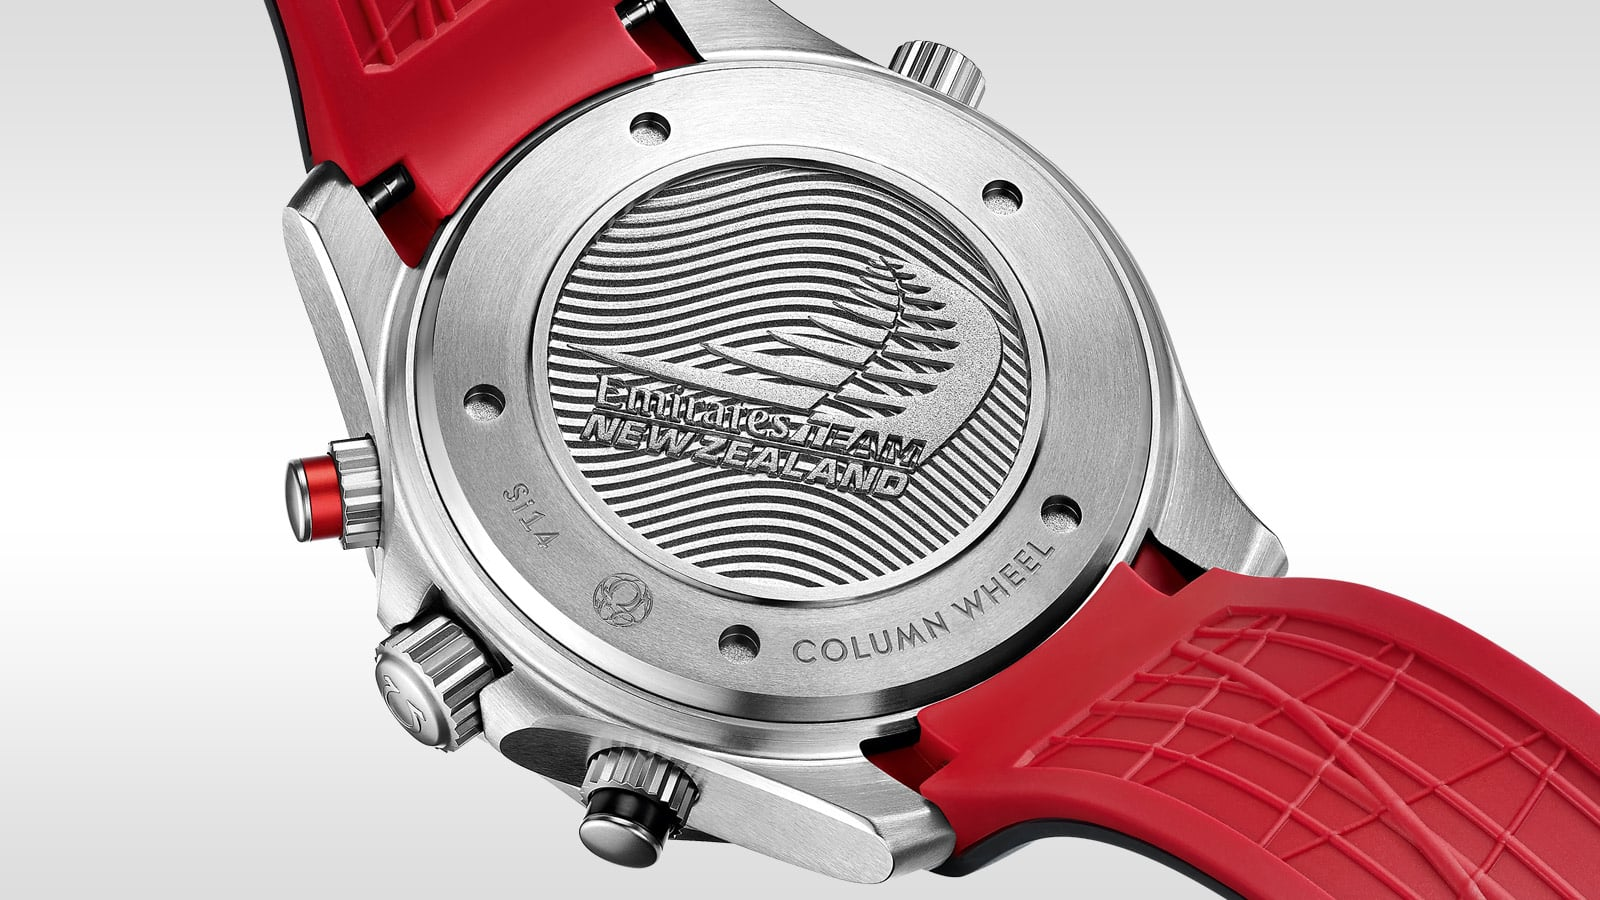 Back view of the ETNZ watch, the backside of the strap is red with a pattern that ensures that water and air can pass freely underneath, allowing the skin to breathe. The back of the watch is engraved with the ETNZ logo.